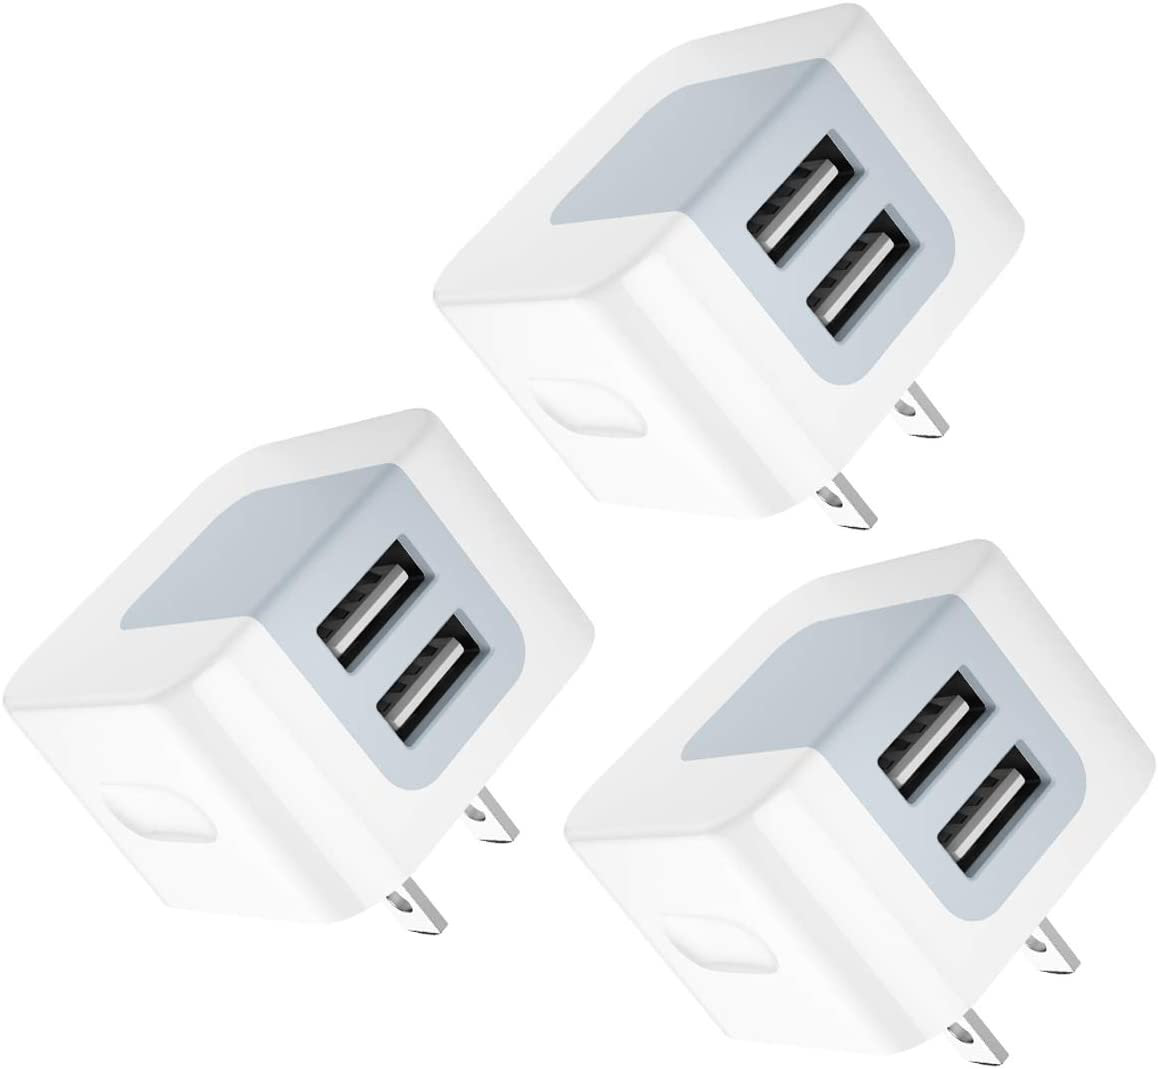 USB Wall Charger, USB Plug, 3-Pack 2.4A Dodoli Dual Port 12W Wall Charger Block Adapter Charging Cube Box Compatible iPhone Xs/XS Max/XR/X/8/8 Plus/7/6S/ 6S Plus, Samsung Galaxy, HTC, Moto